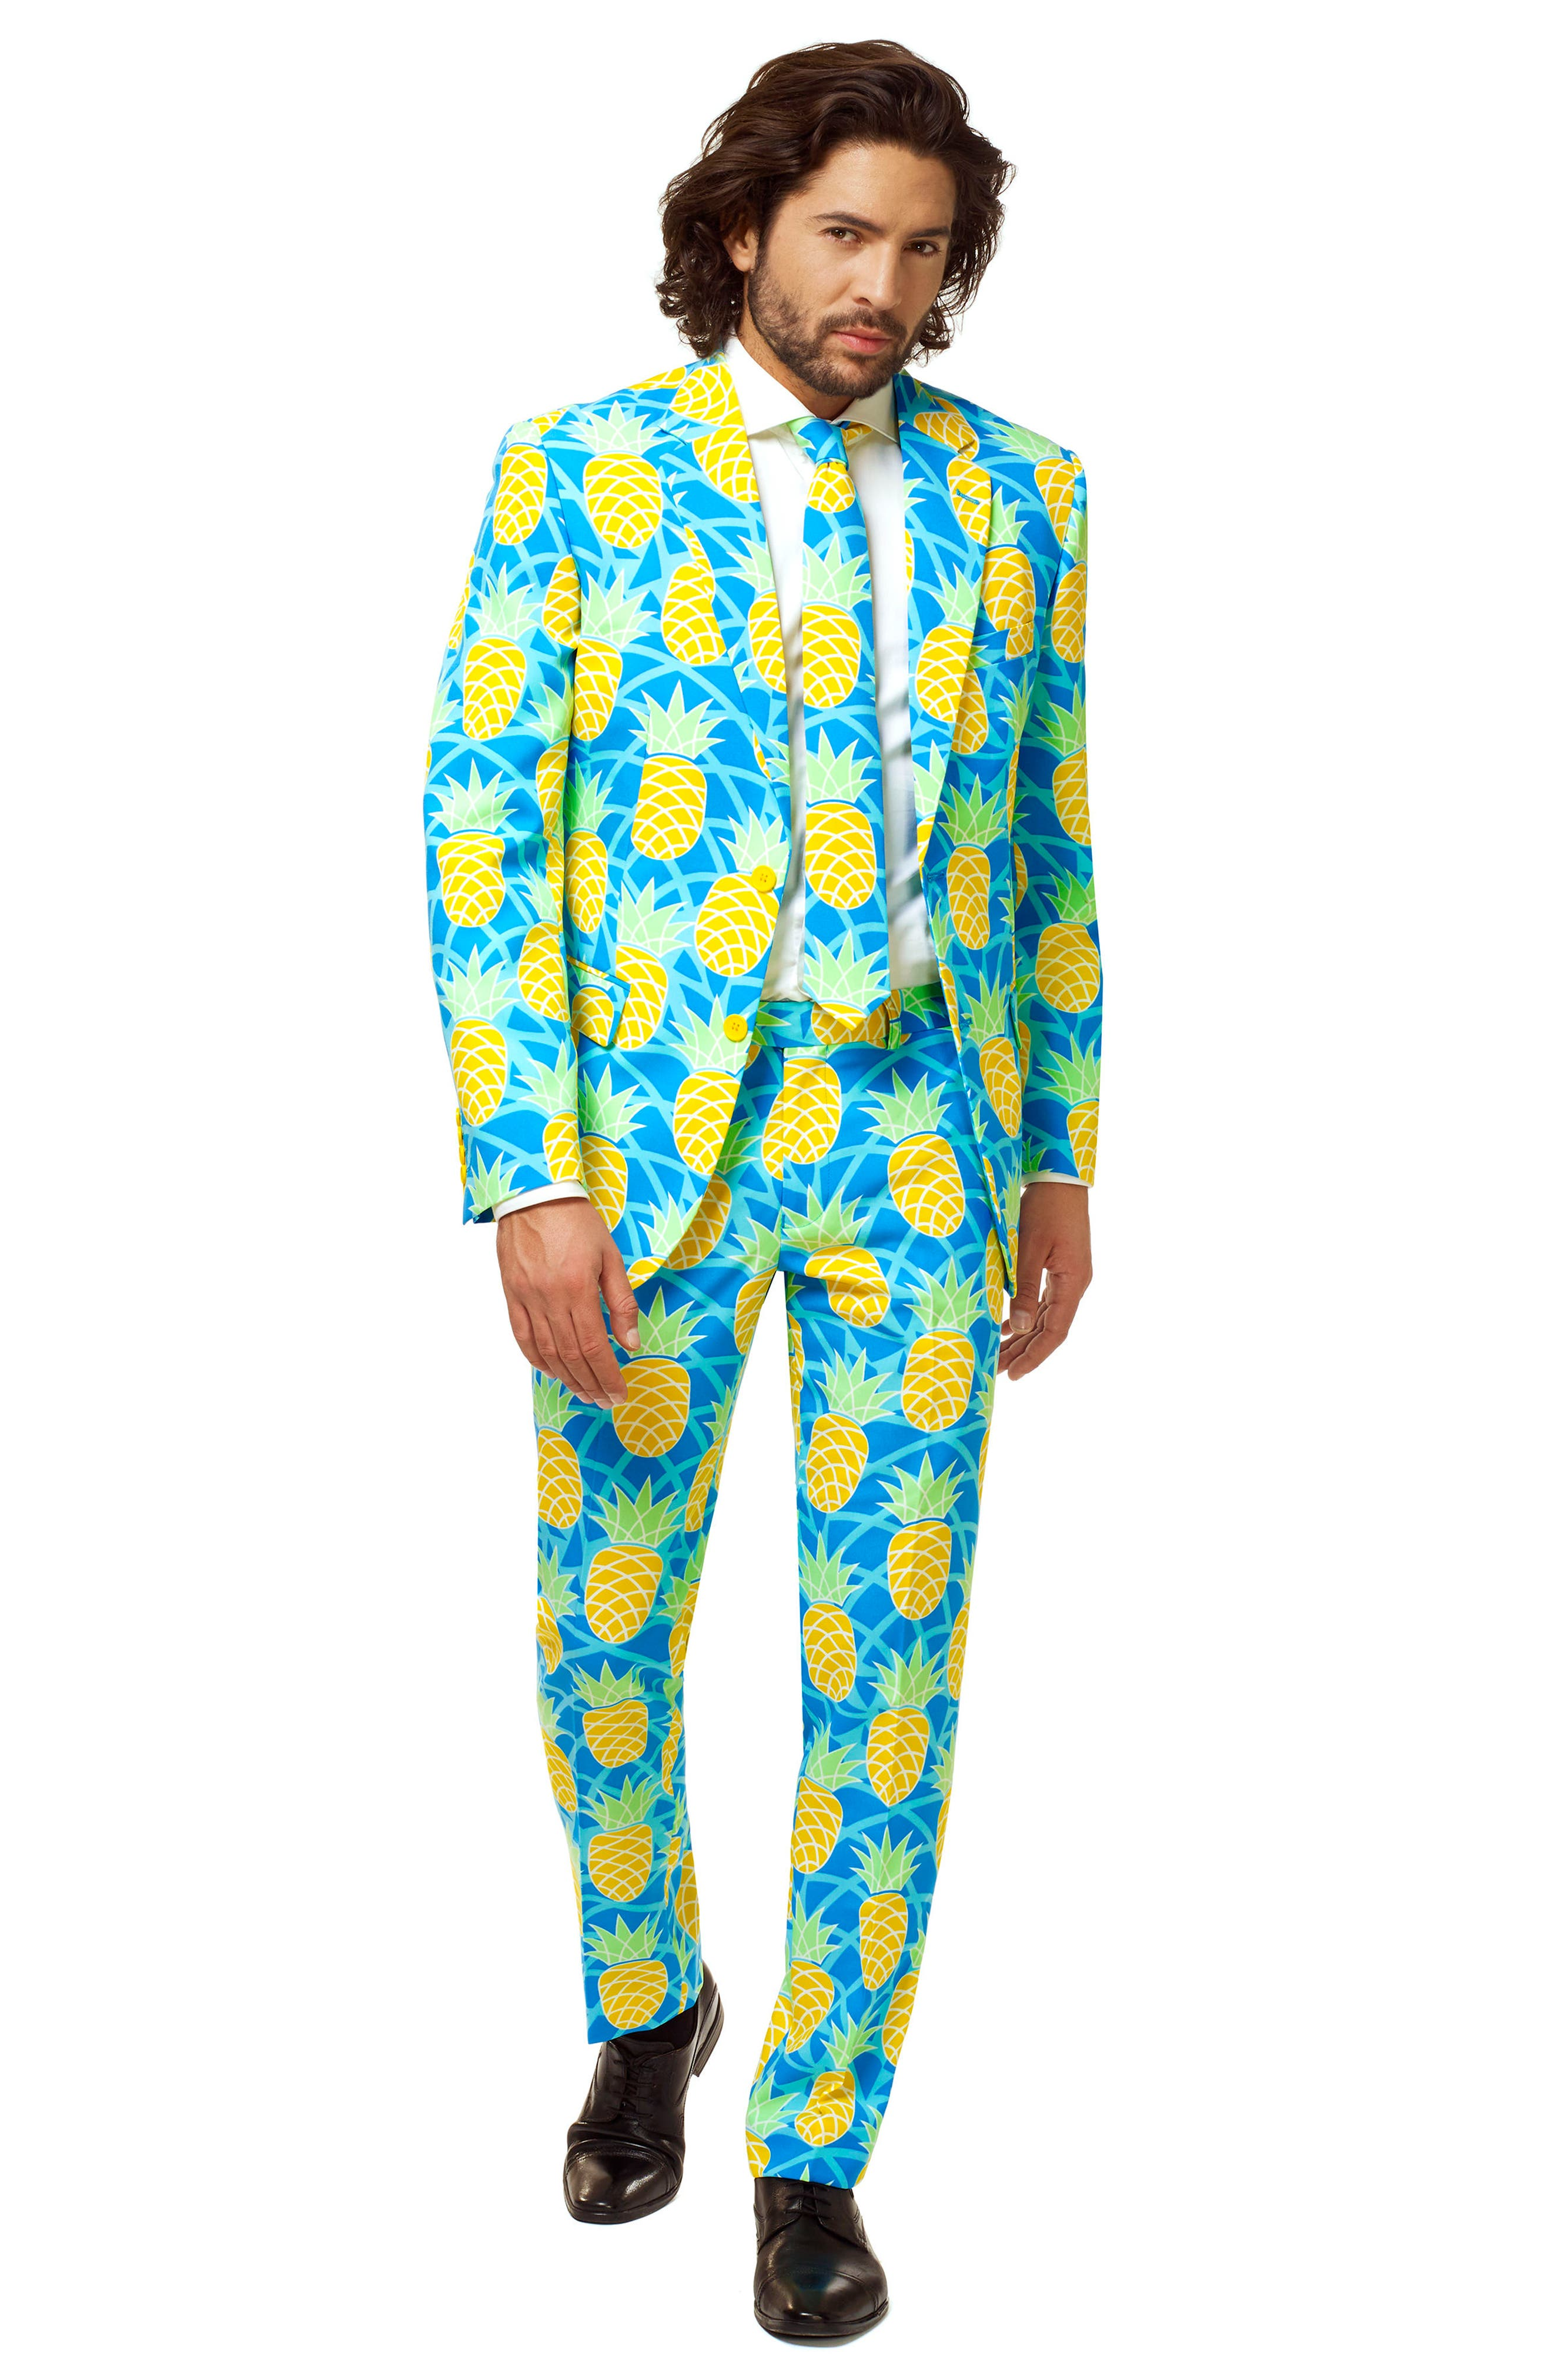 Summer Shineapple Trim Fit Two-Piece Suit with Tie,                             Alternate thumbnail 4, color,                             400